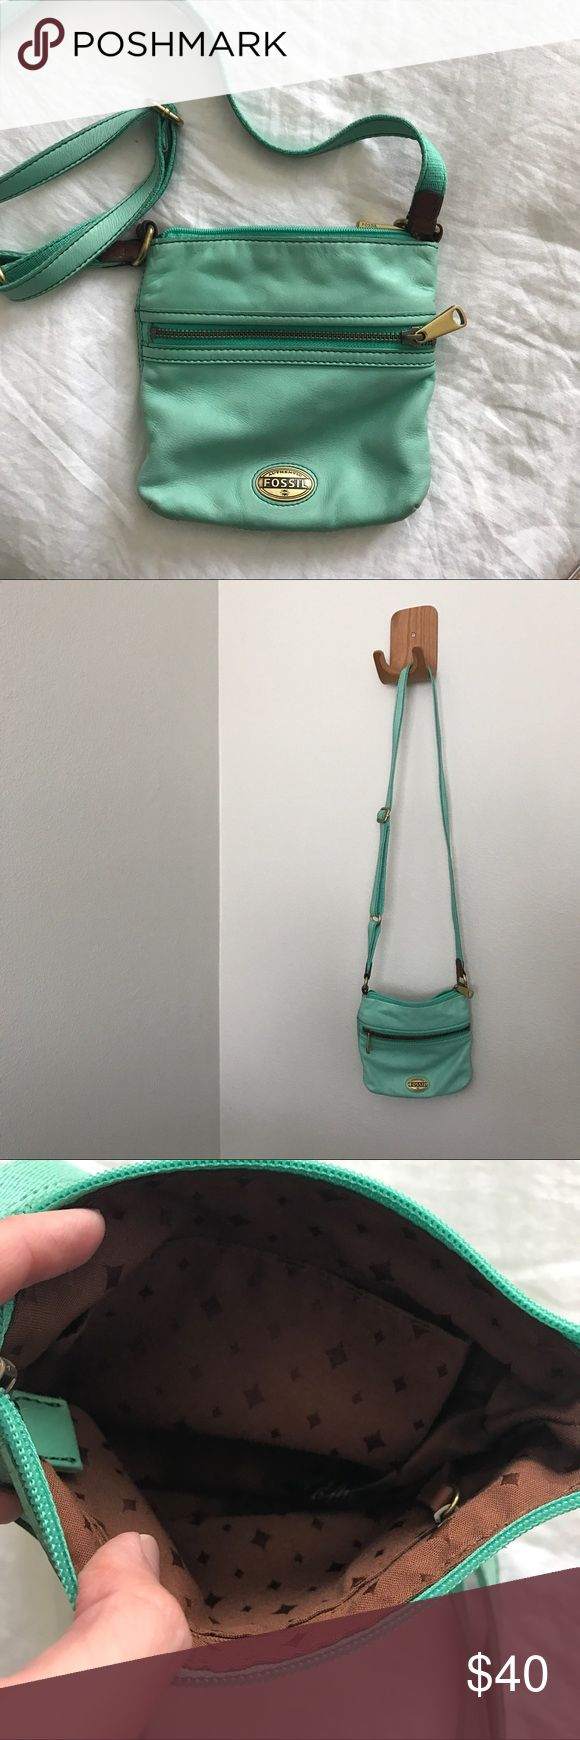 Teal over-the-shoulder fossil bag Small, bright teal fossil bag that easily slings over the shoulder is sure to add a bit of style to your every day! Worn less than 10 times. Fossil Bags Shoulder Bags